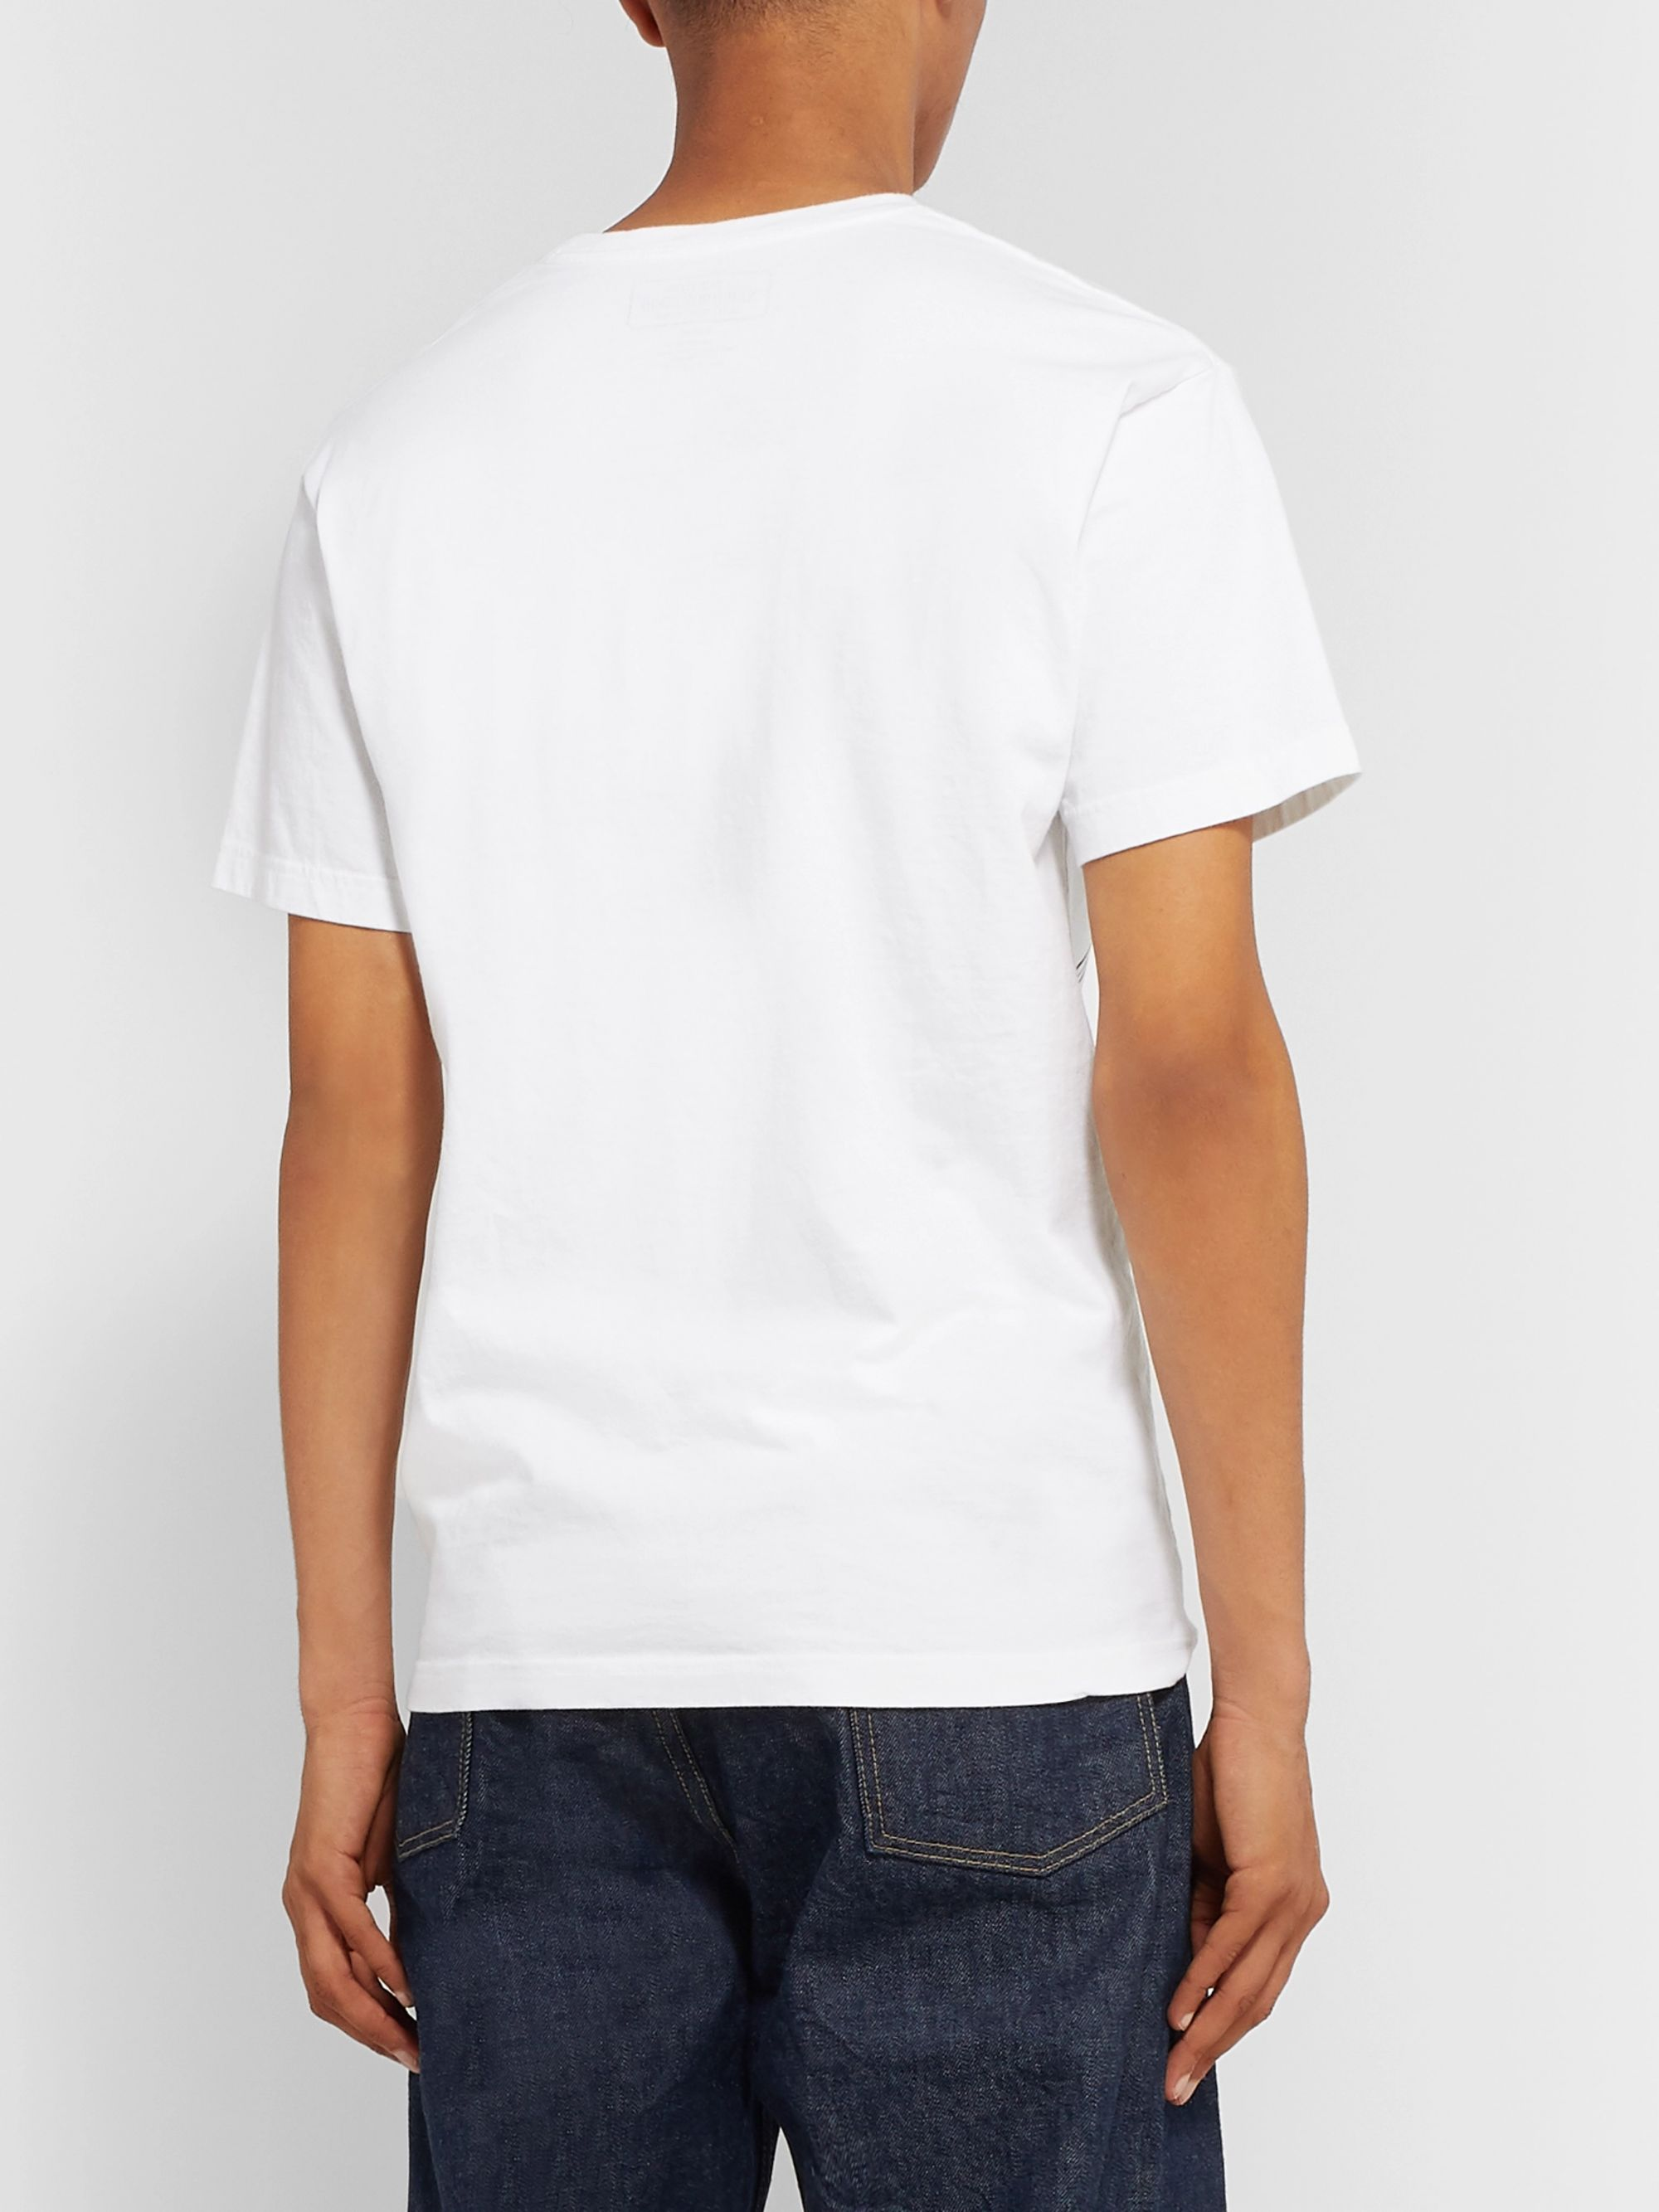 Neighborhood Souvenir Printed Cotton-Jersey T-Shirt